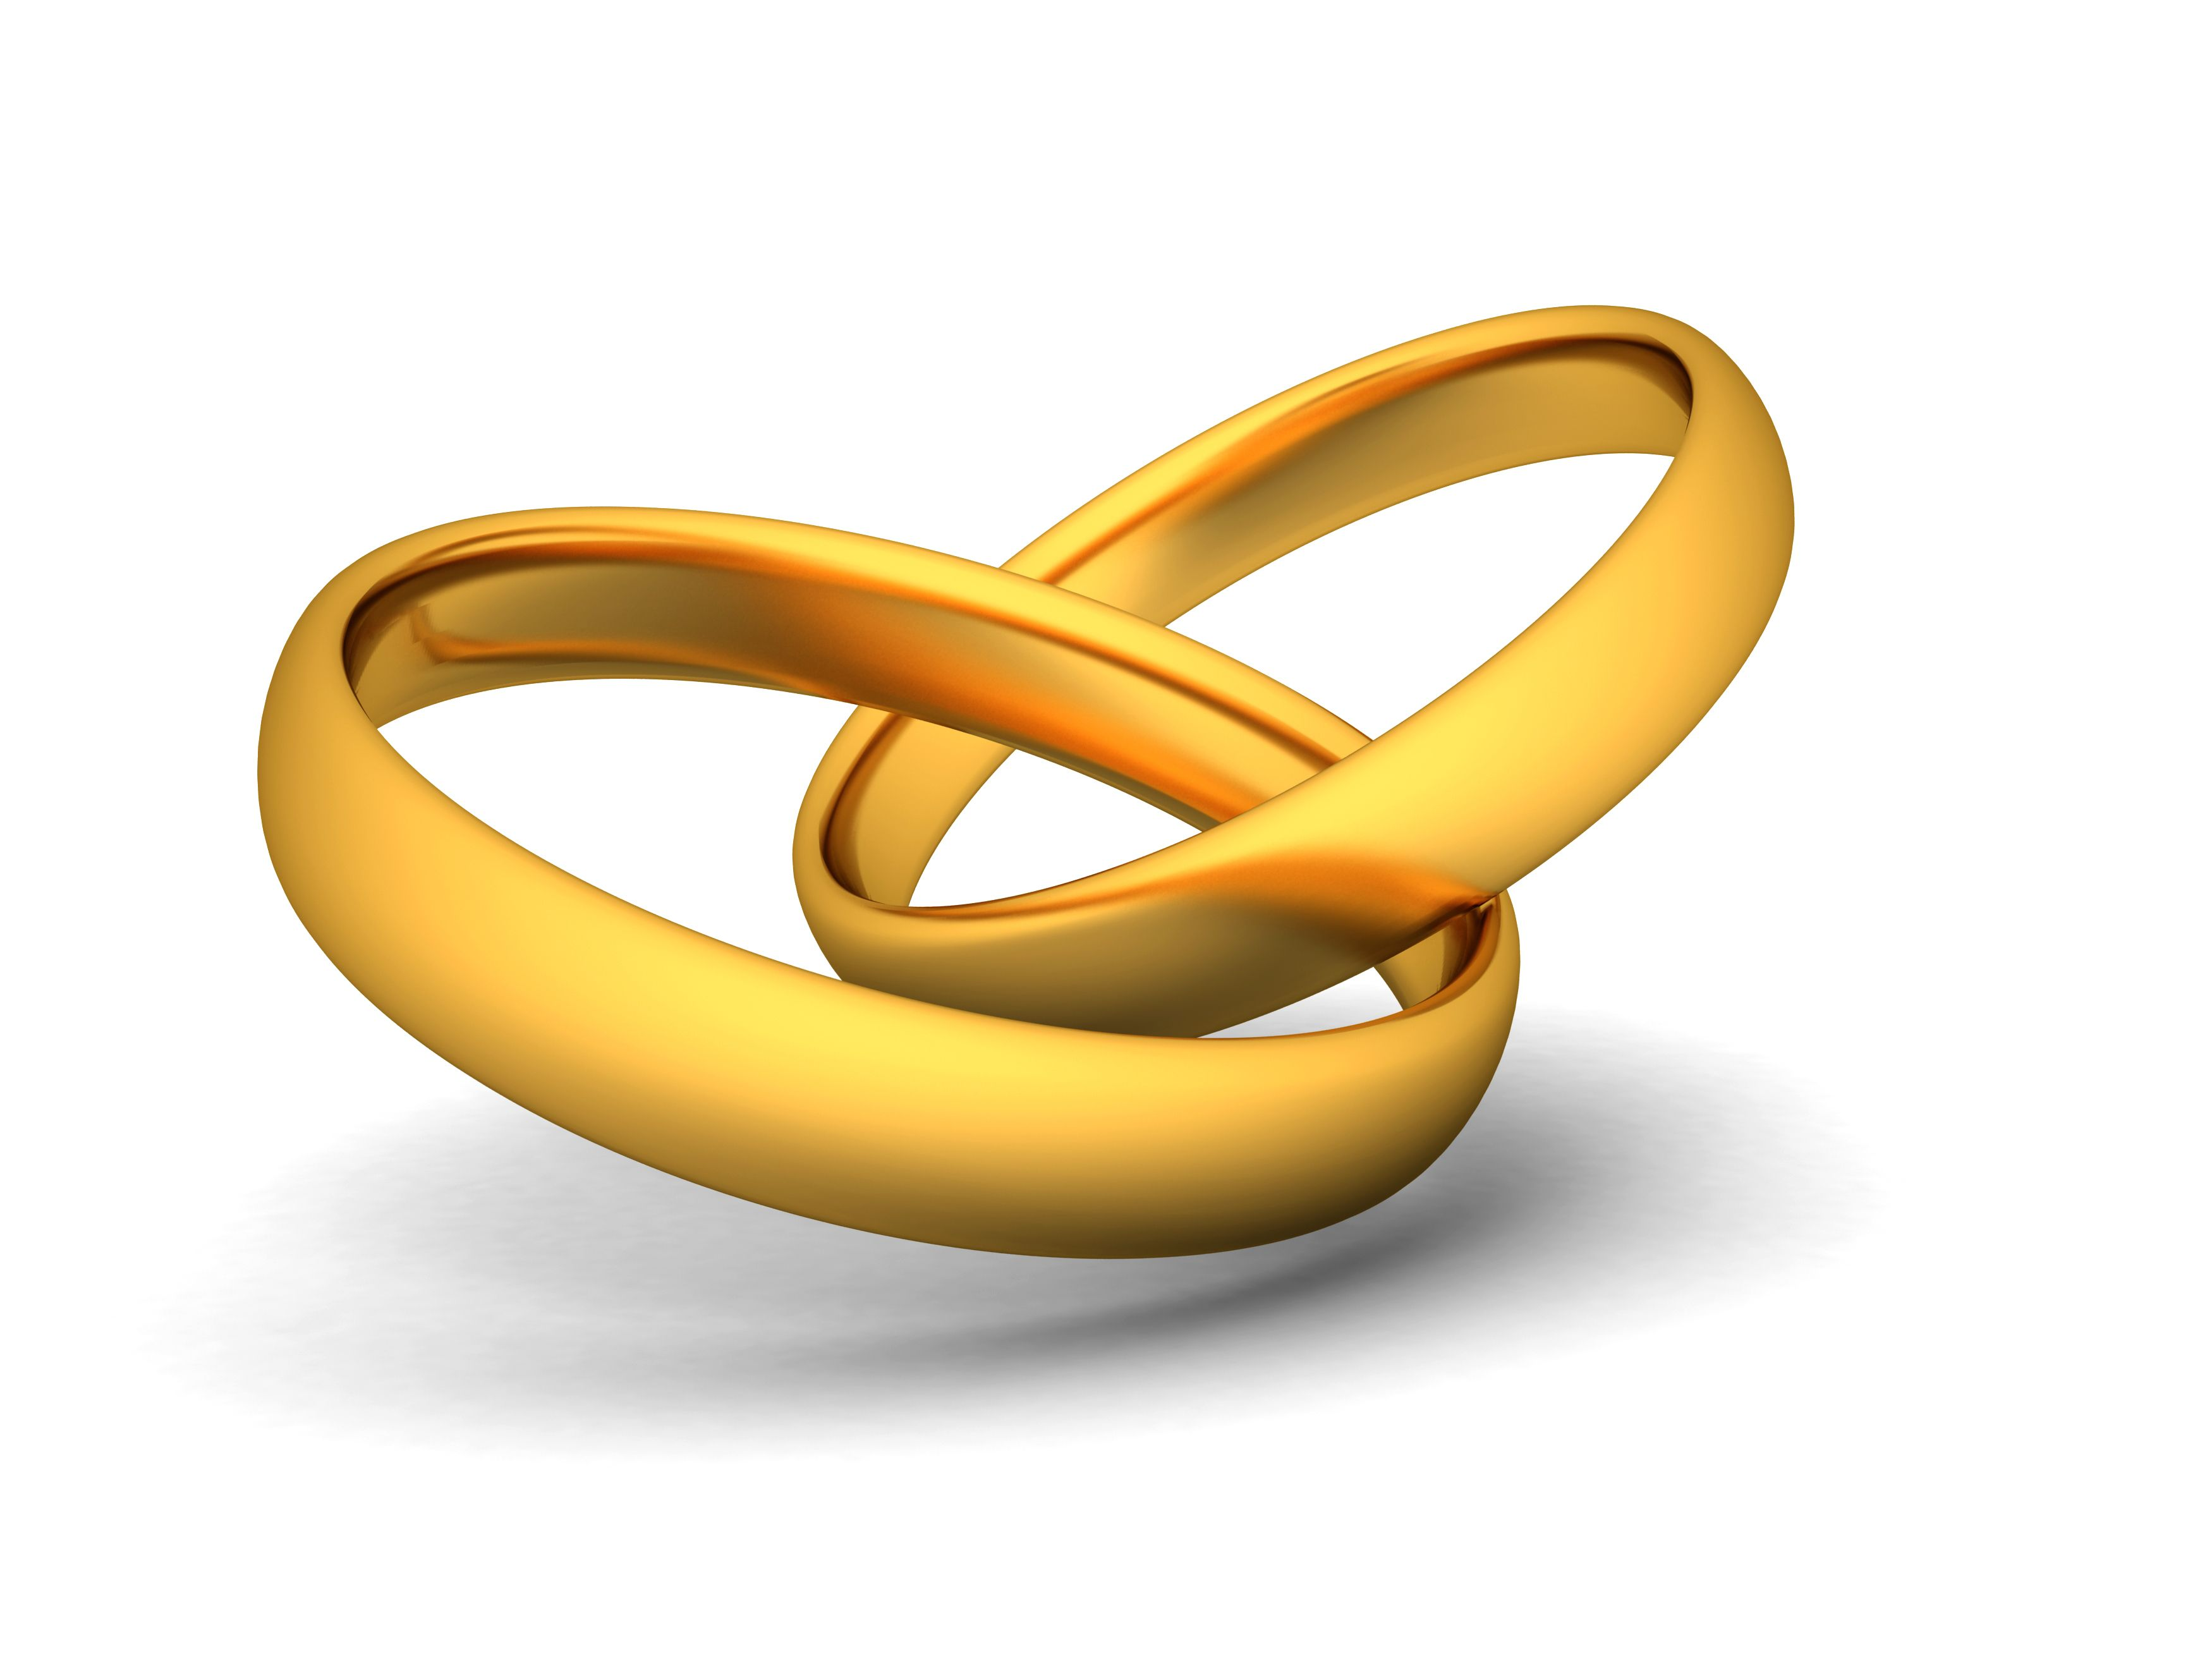 3500x2625 Marriage Talk 7 Easy Tips For A Happy Marriage Wedding Rings